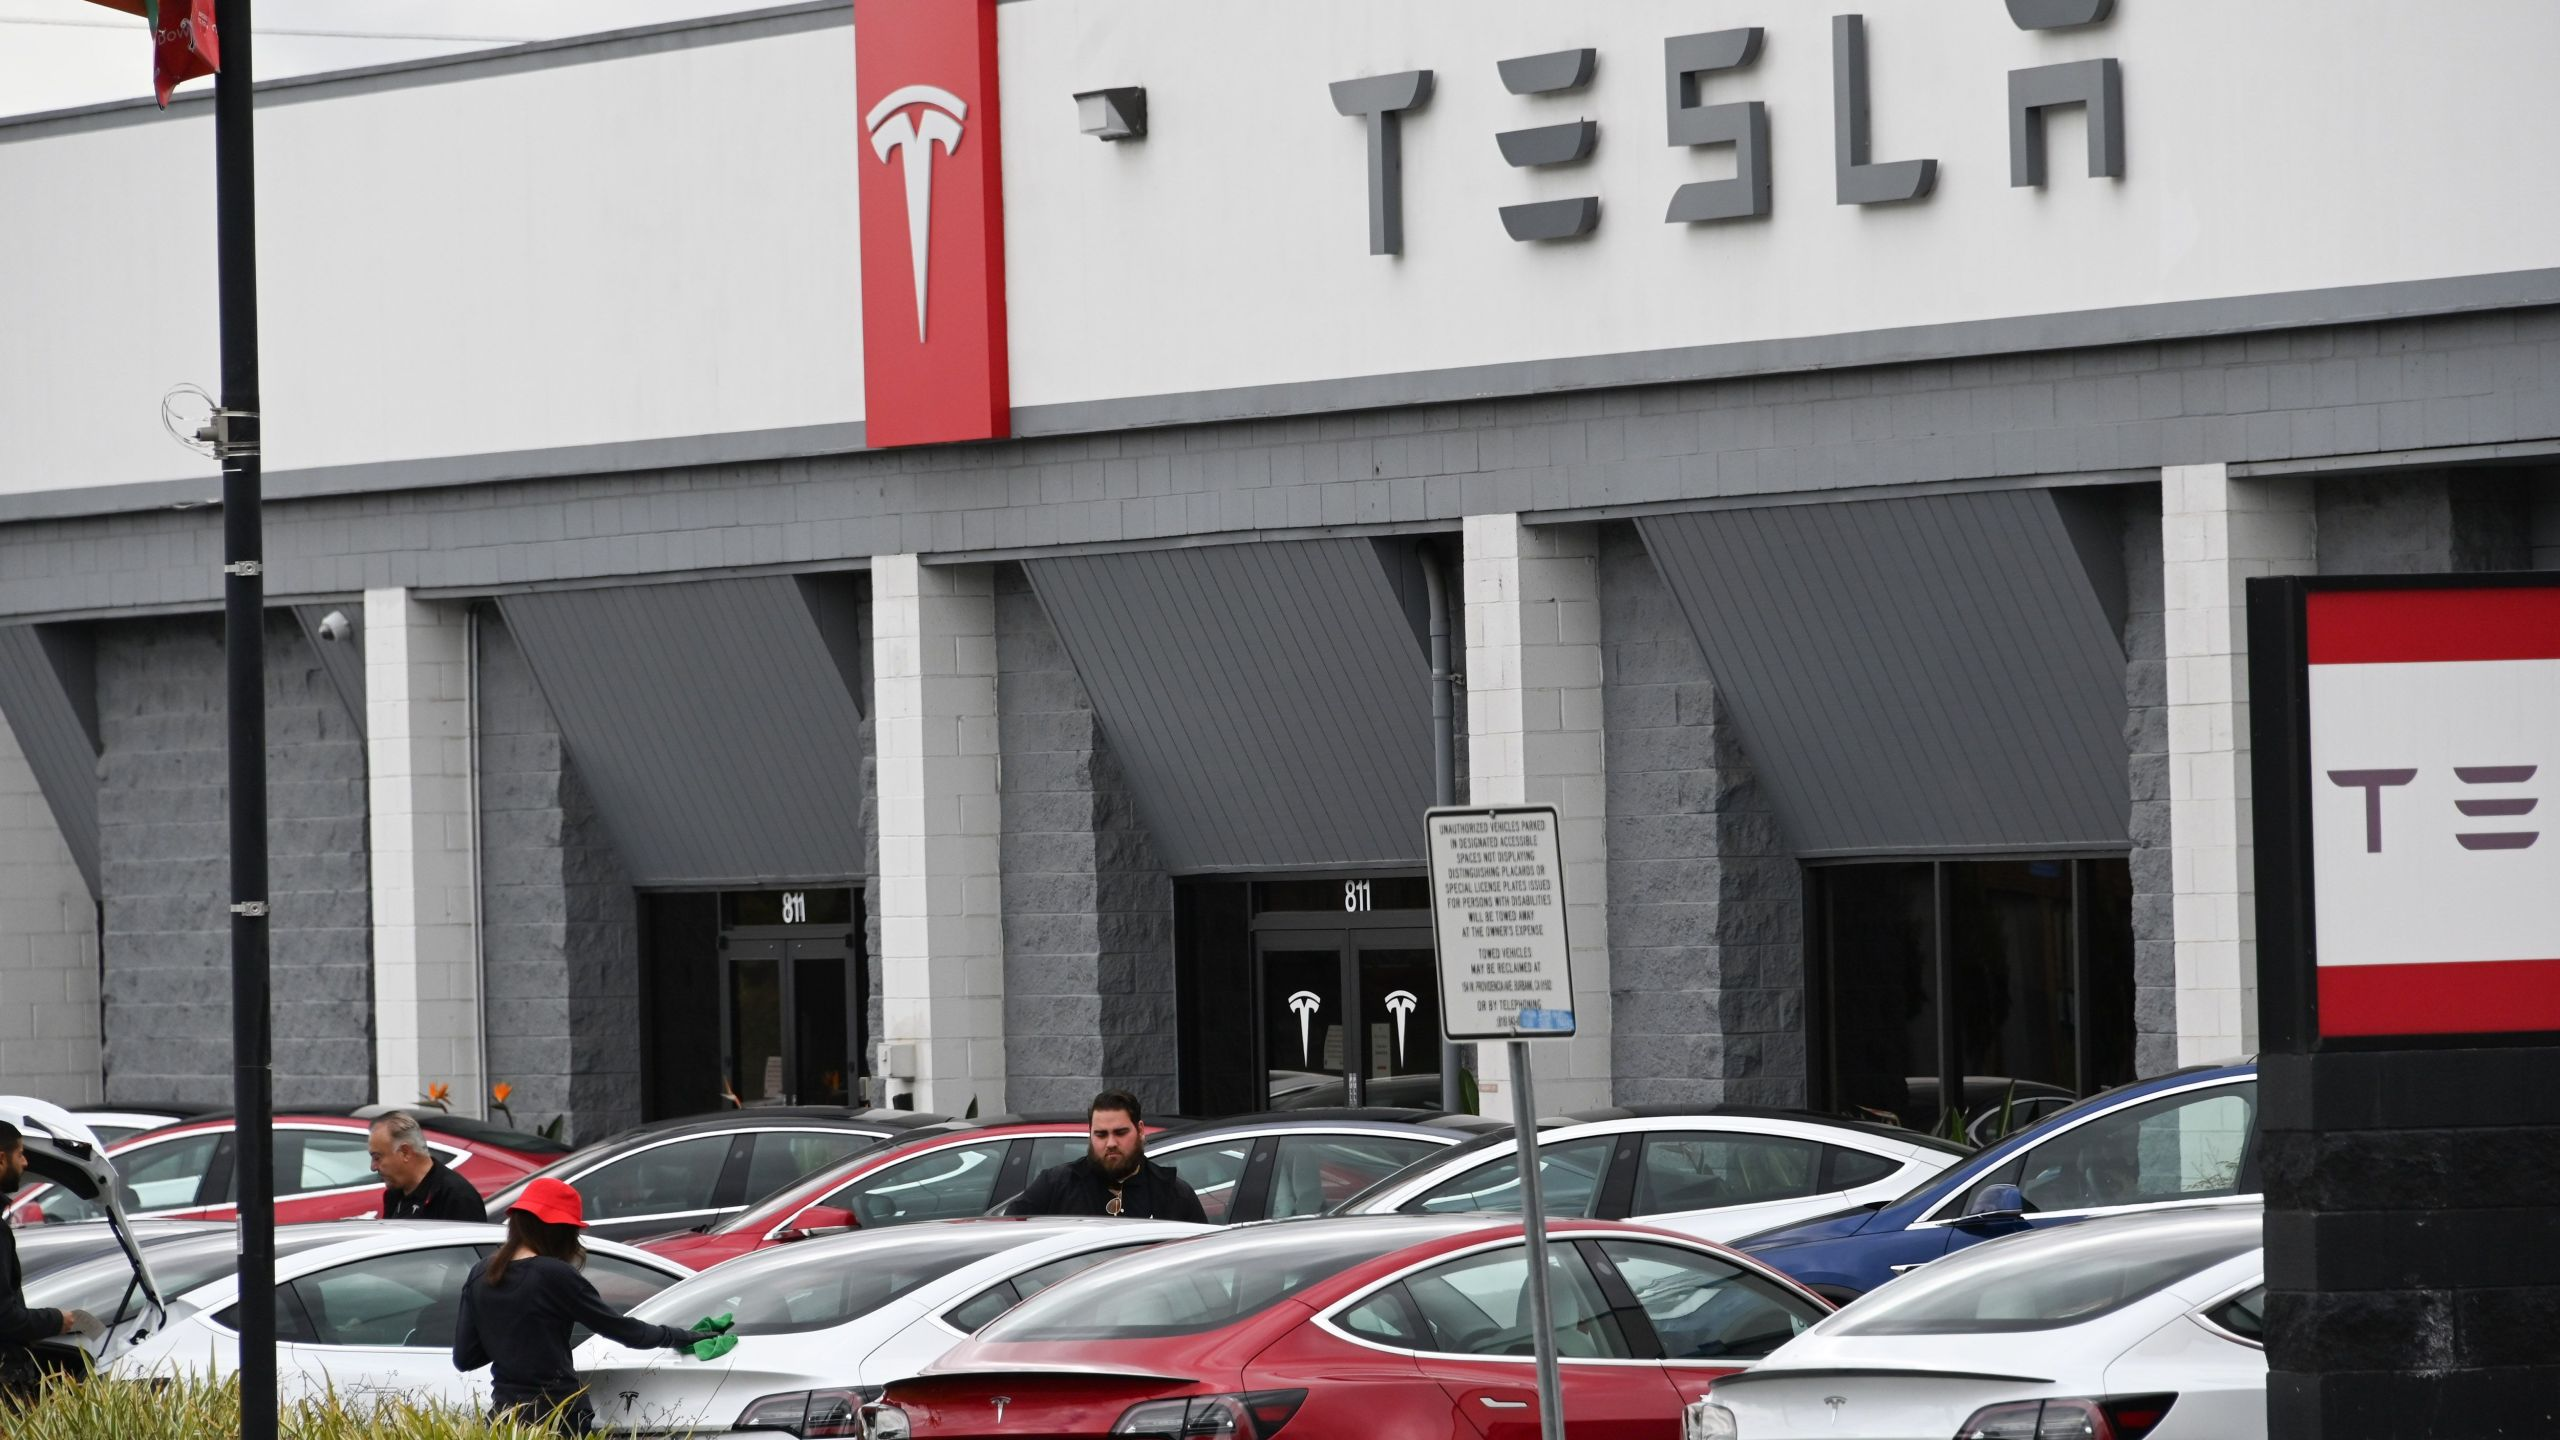 Tesla employees work outside a Tesla showroom in Burbank on March 24, 2020. (Credit: Robyn Beck / AFP / Getty Images)